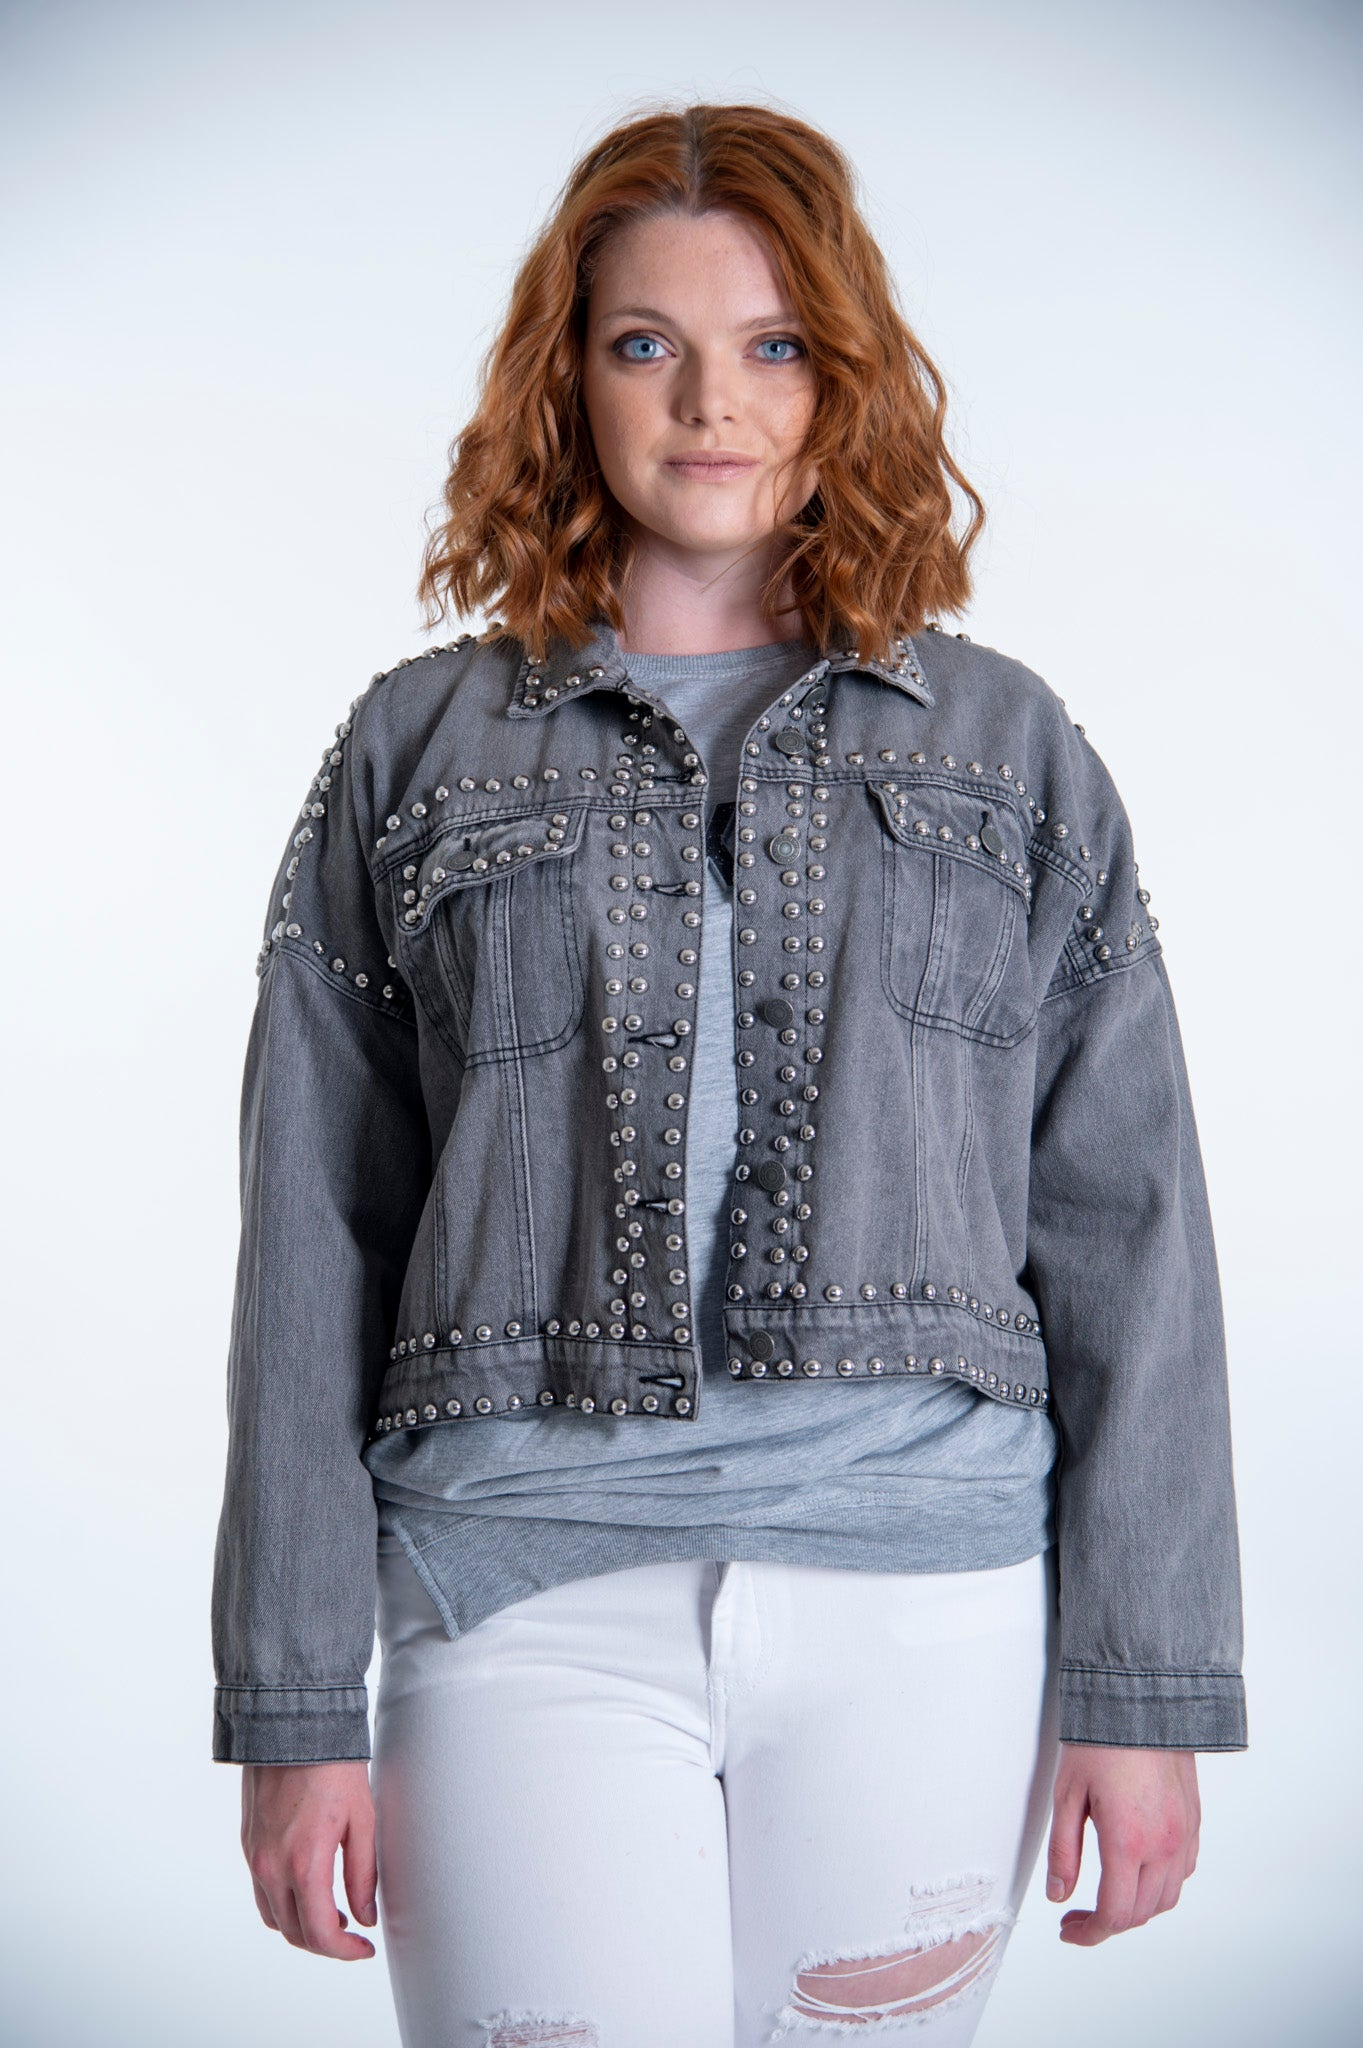 Ciminy Paris oversized jacket with silver studs